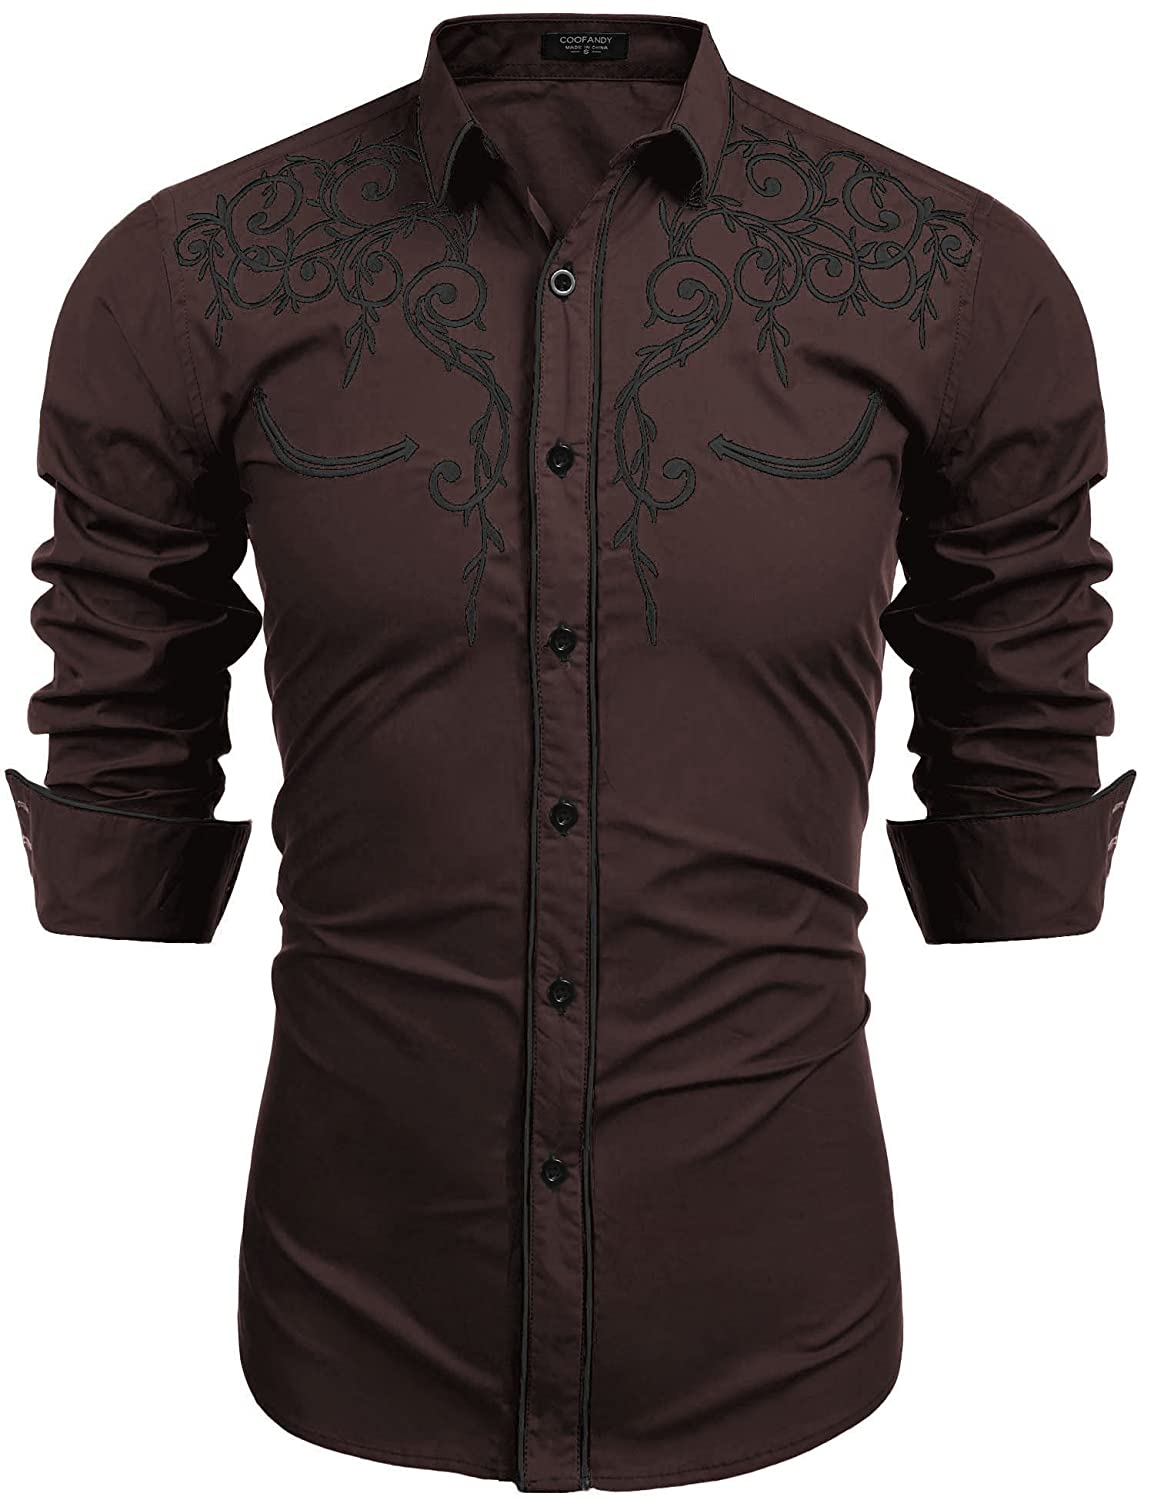 COOFANDY Mens Long Sleeve Embroidered Shirt Slim Fit Casual Button Down Shirts